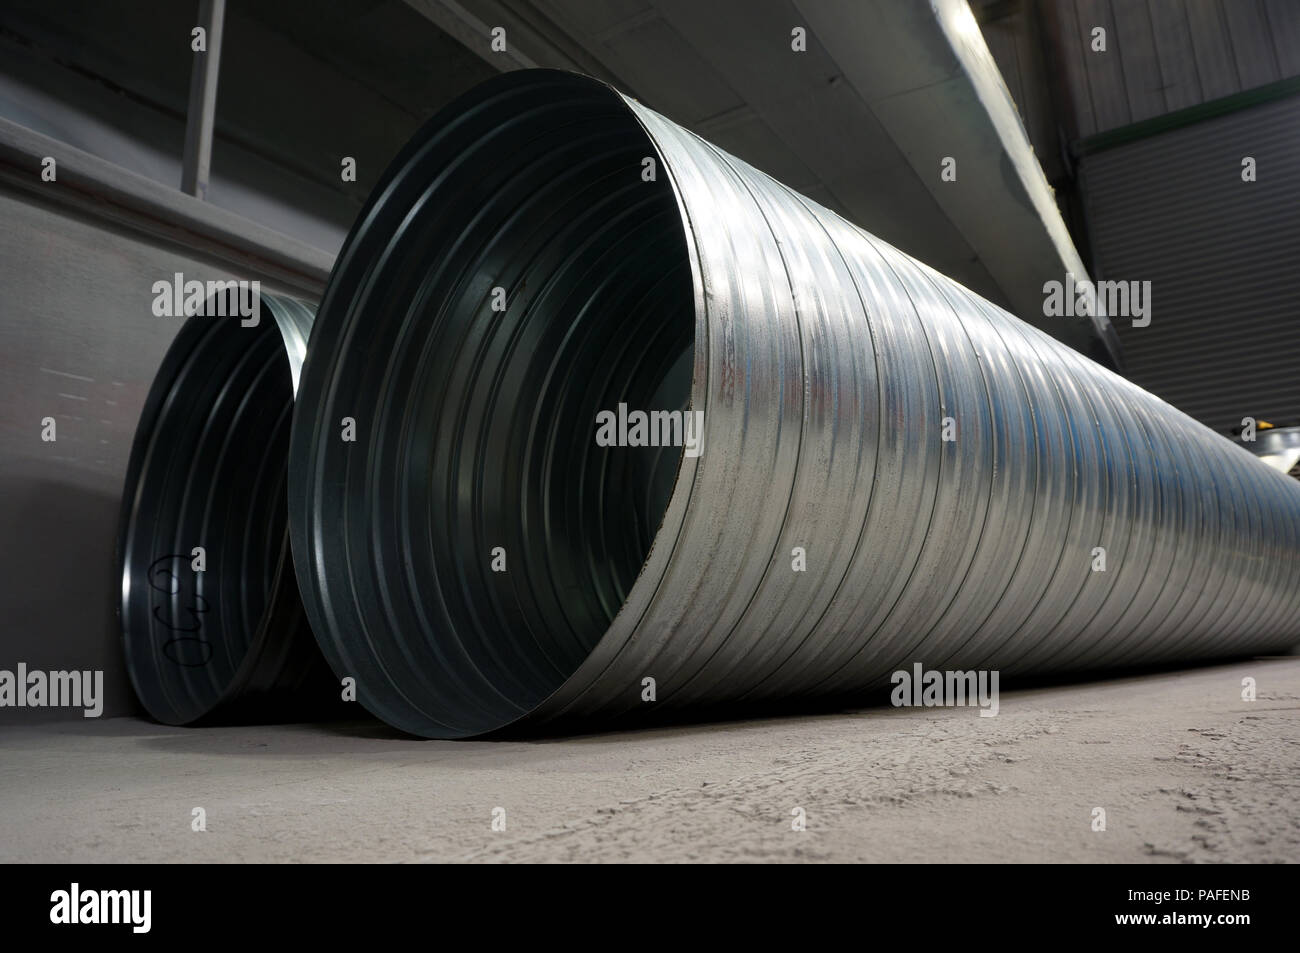 Galvanised steel ducting tubing for air extraction on the floor of a factory warehouse - Stock Image